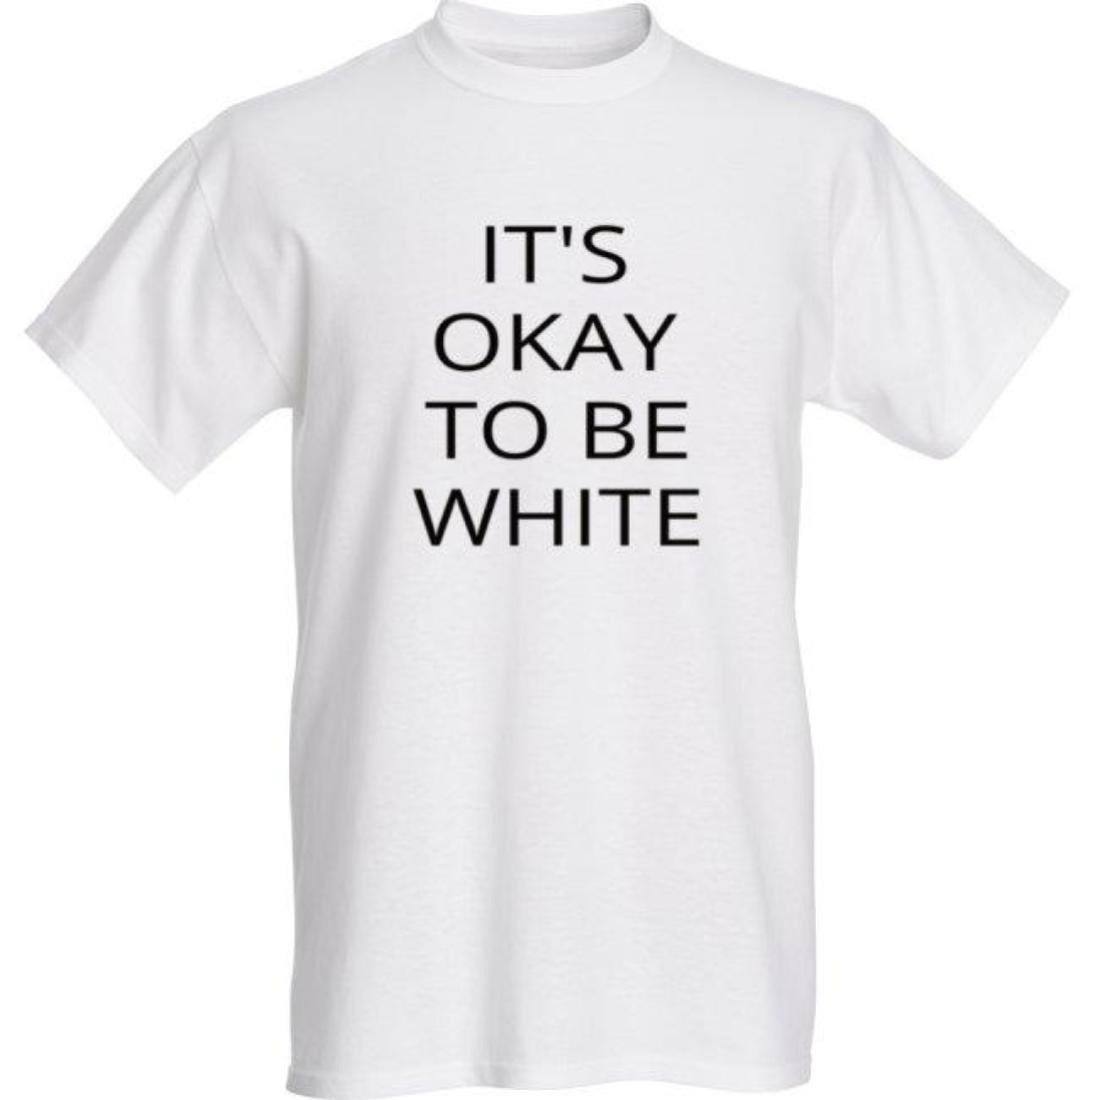 14dc50c19 It's Okay To Be White T-Shirt - Black Text: Amazon.ca: Clothing &  Accessories